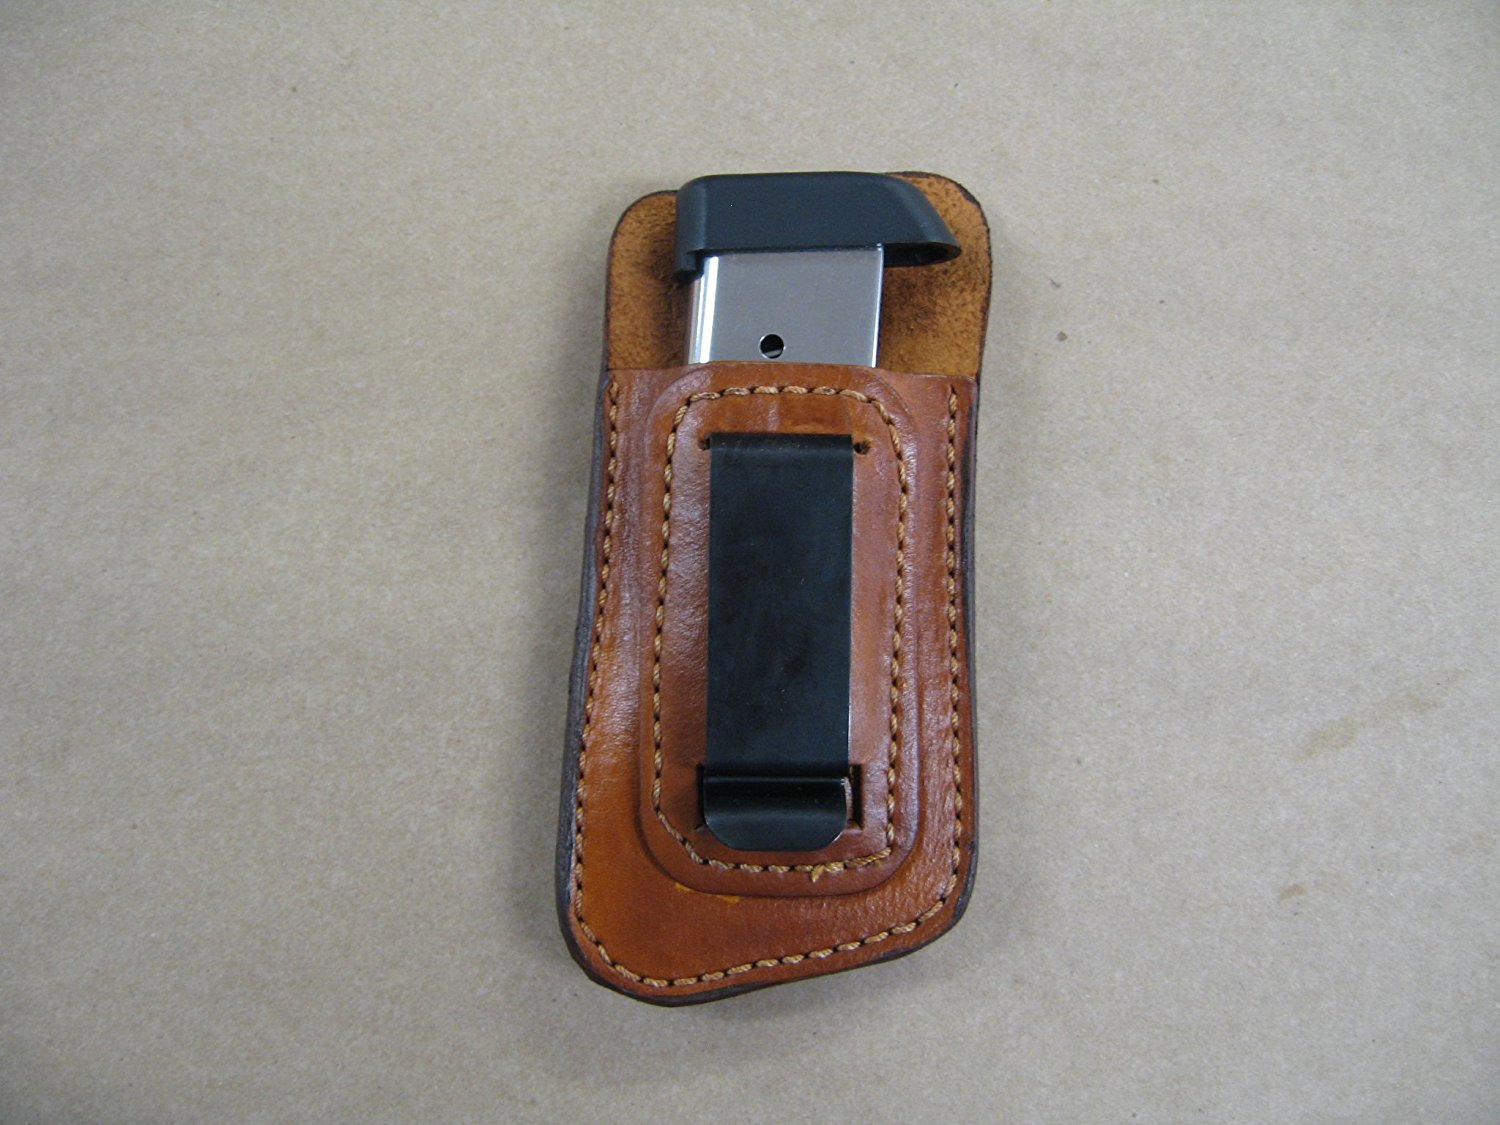 Cheap Ruger Lcp Magazine Pouch, find Ruger Lcp Magazine